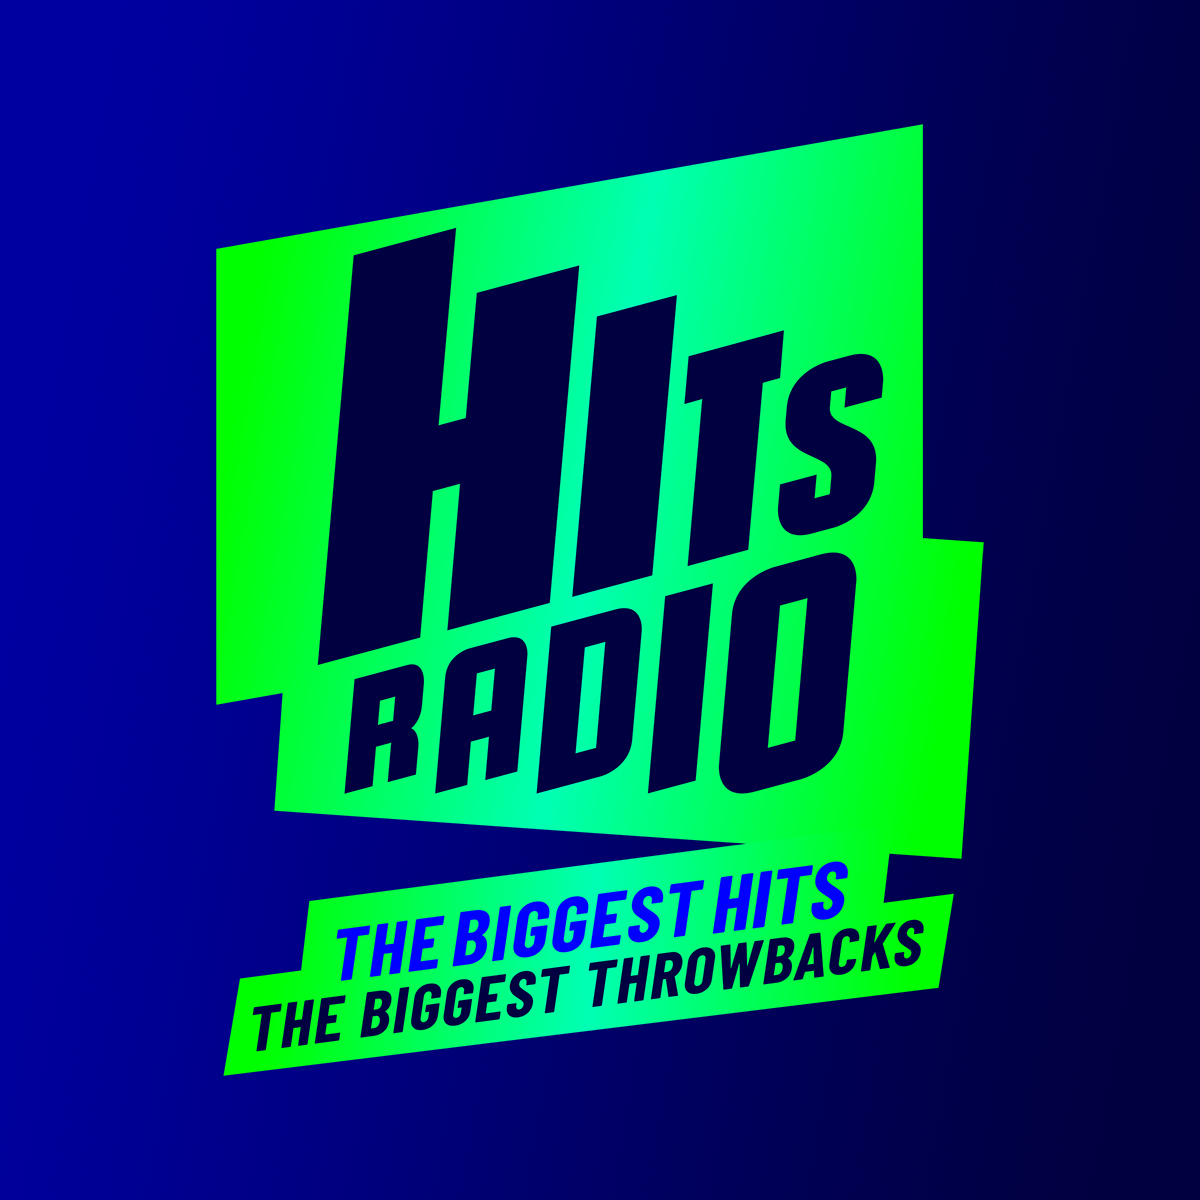 Hits Radio | The Biggest Hits. The Biggest Throwbacks